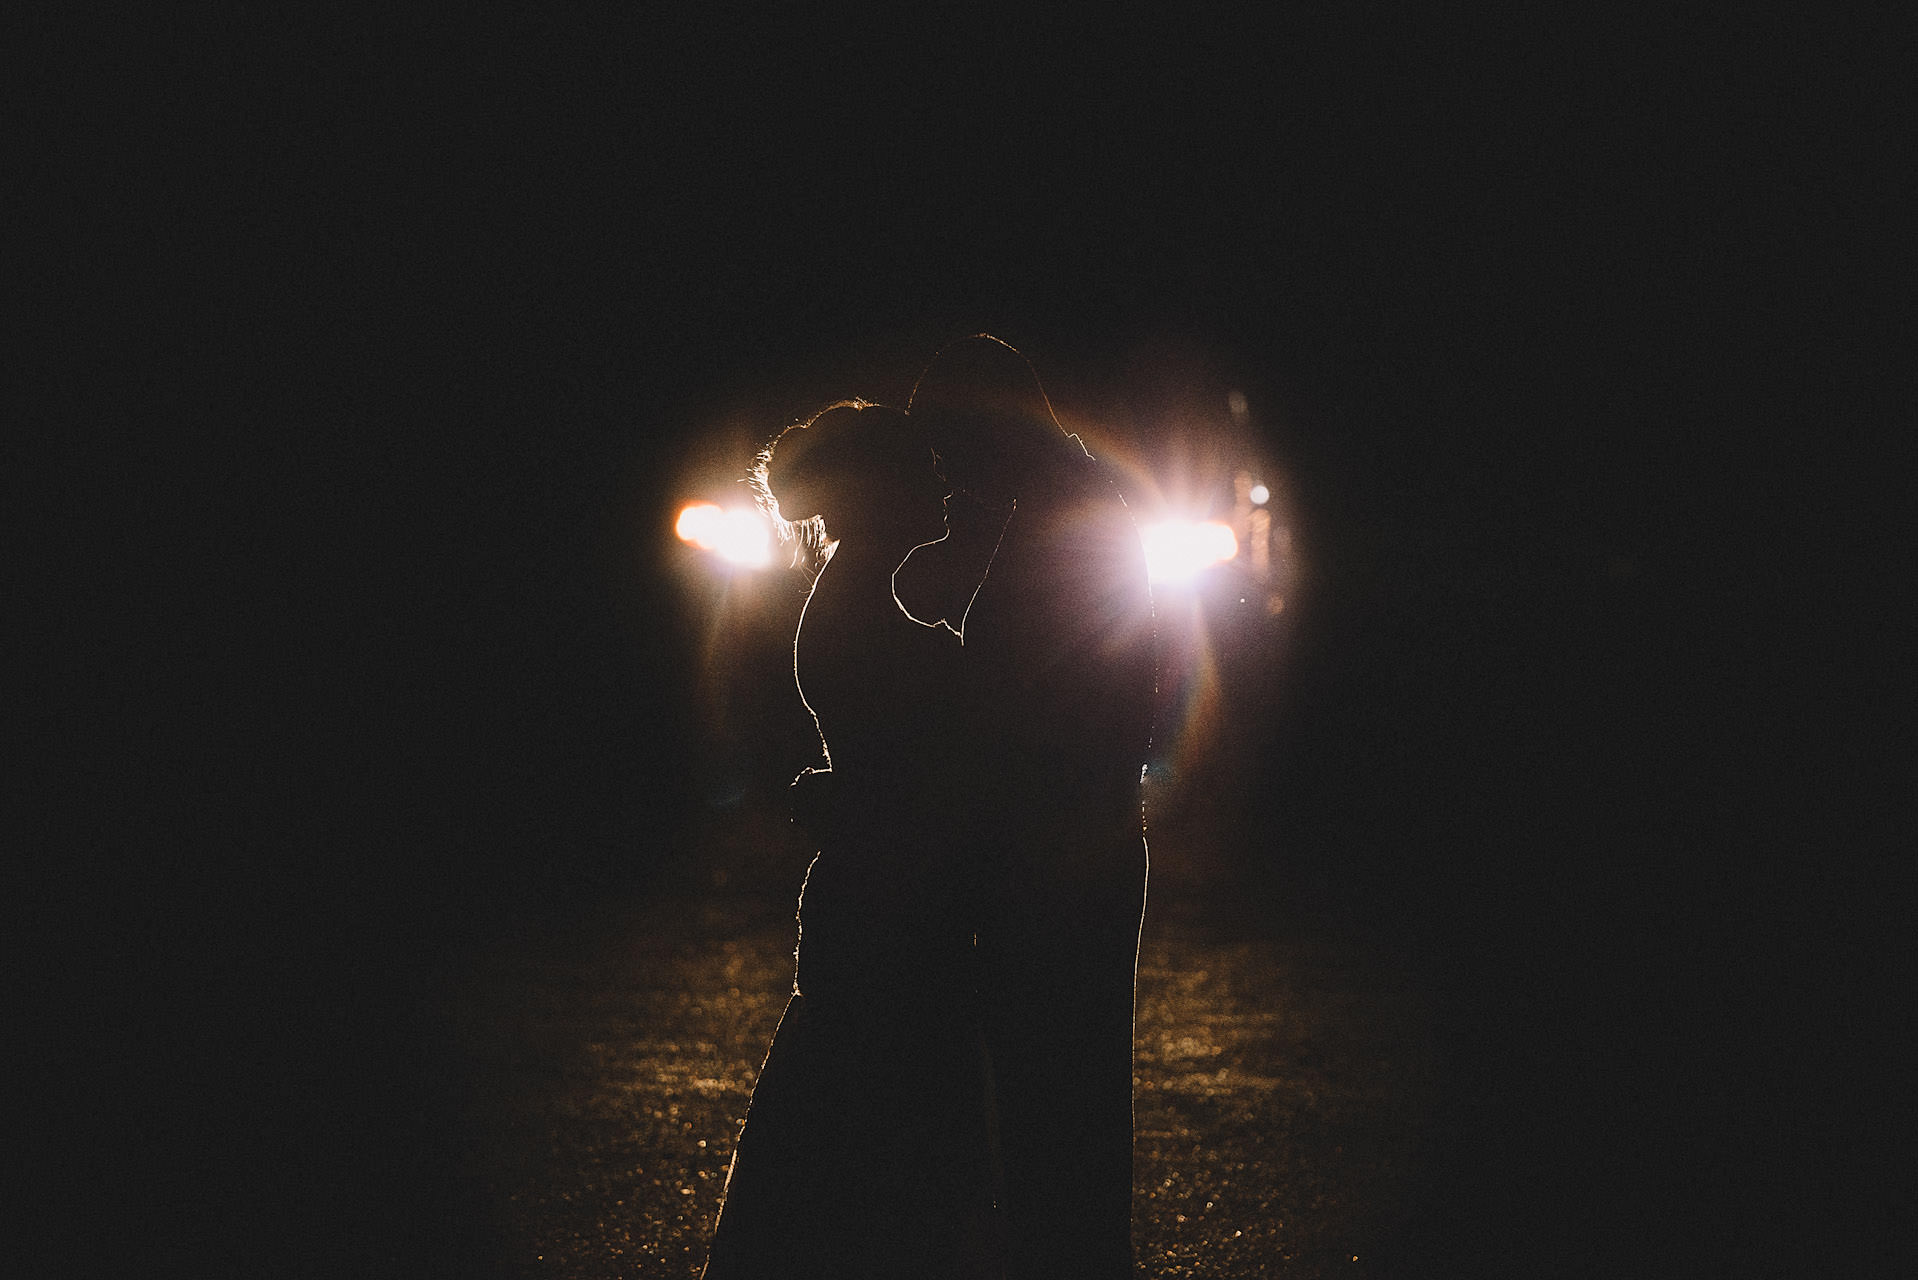 beautiful nighttime wedding portrait